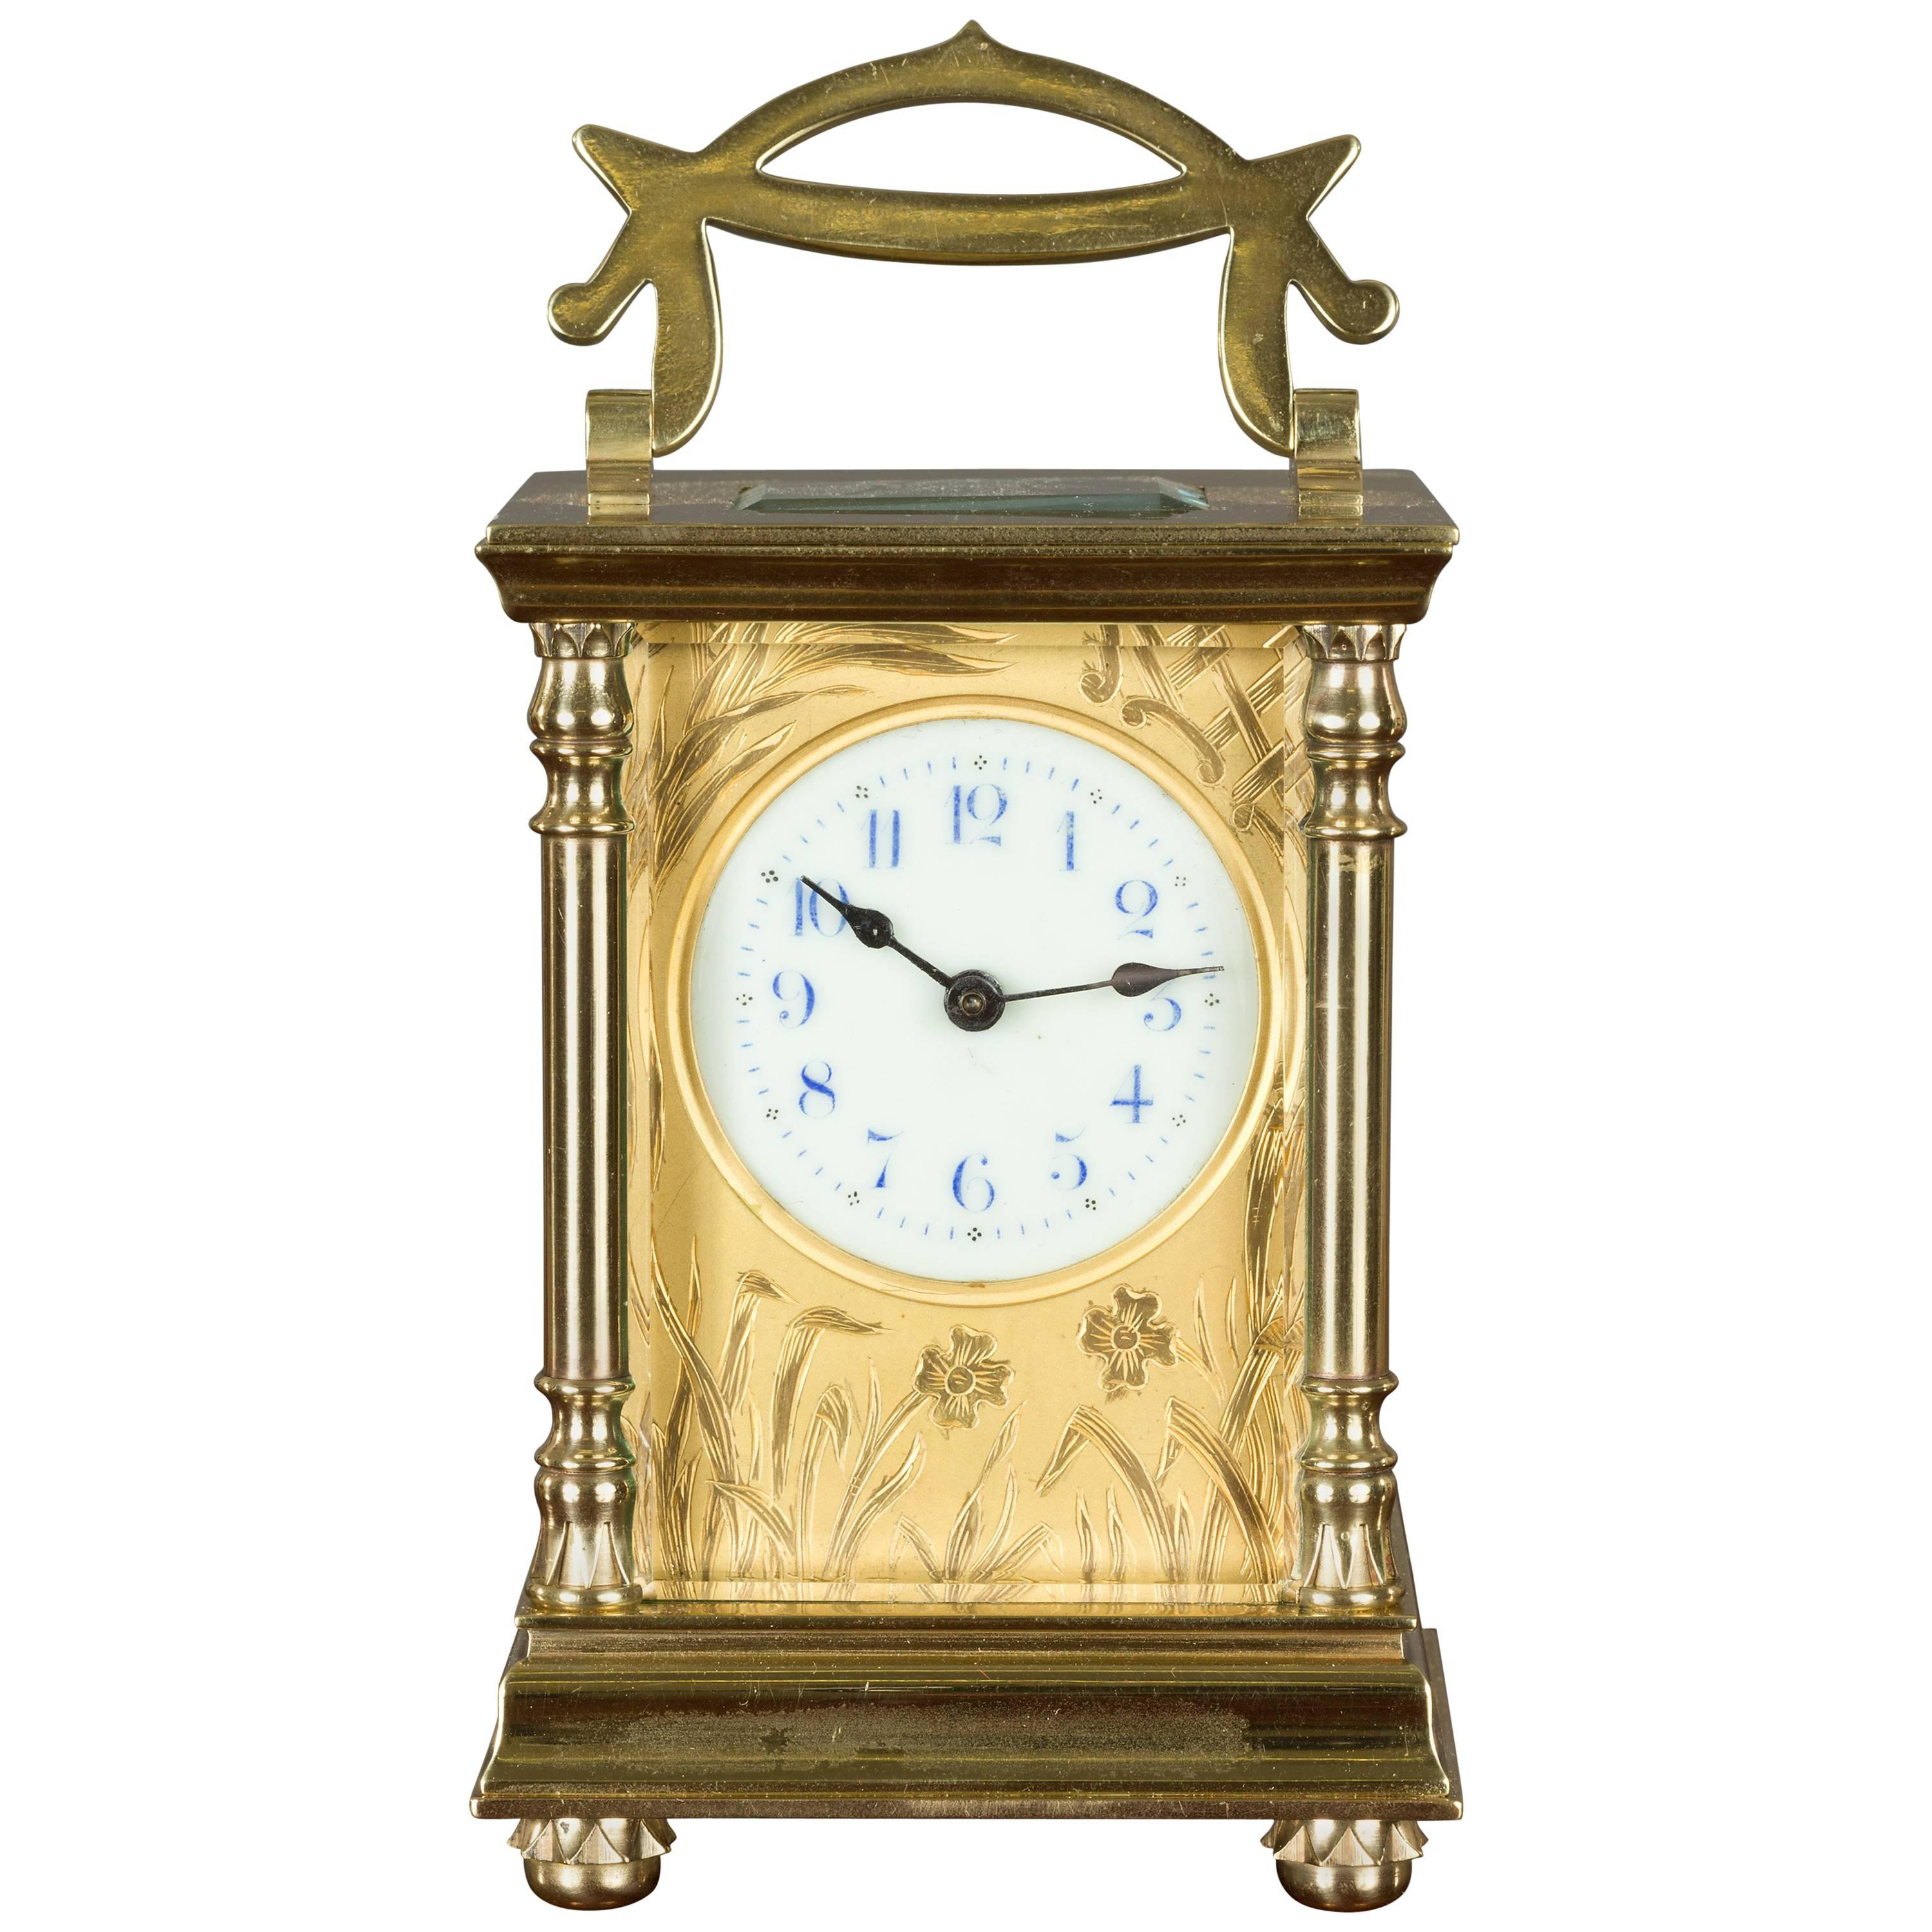 Brass Cased Carriage Clock in the Art Nouveau Style For Sale at 1stdibs